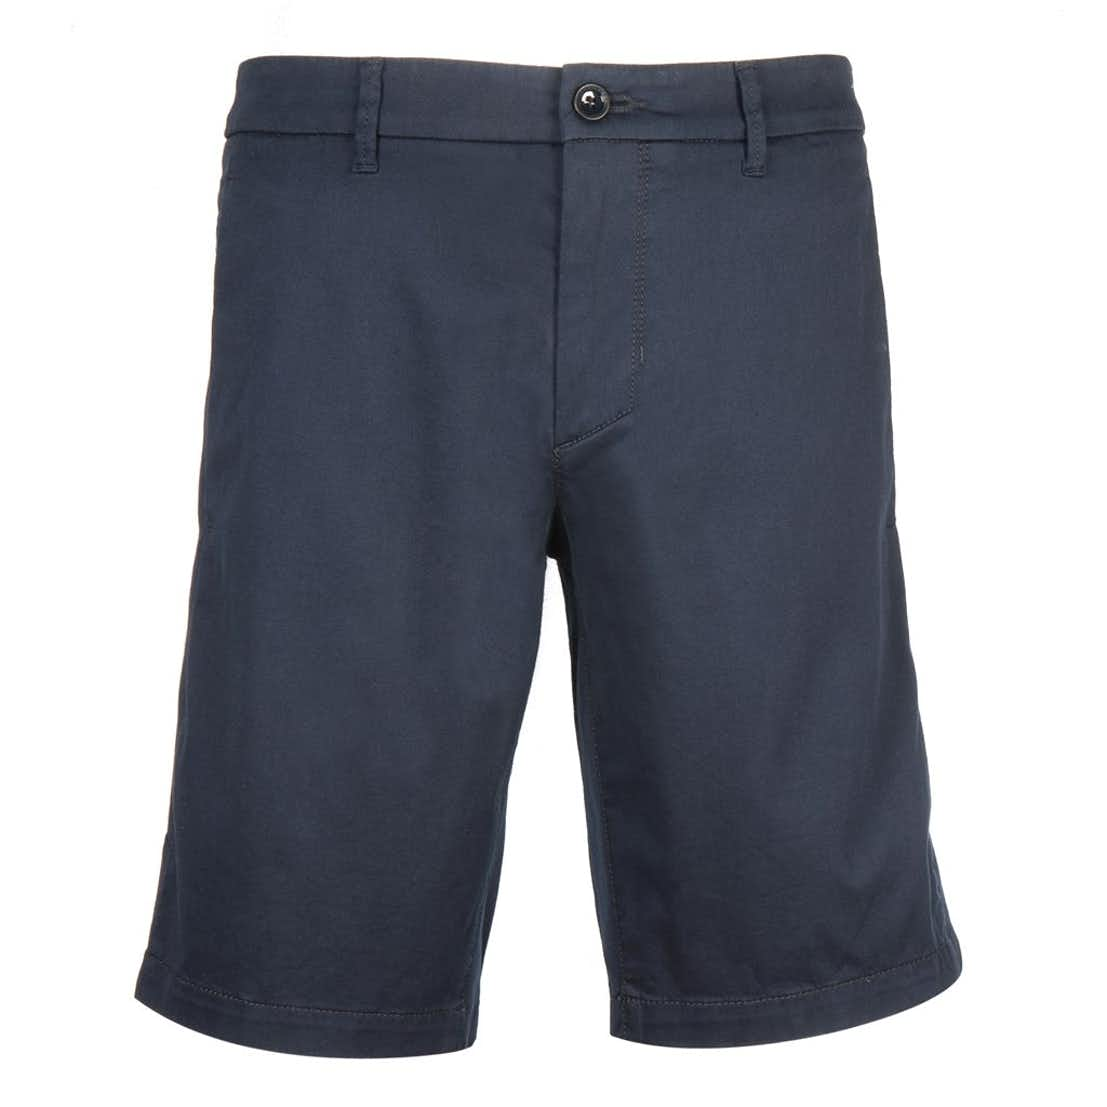 The Open BOSS Slim-Fit Shorts - Blue